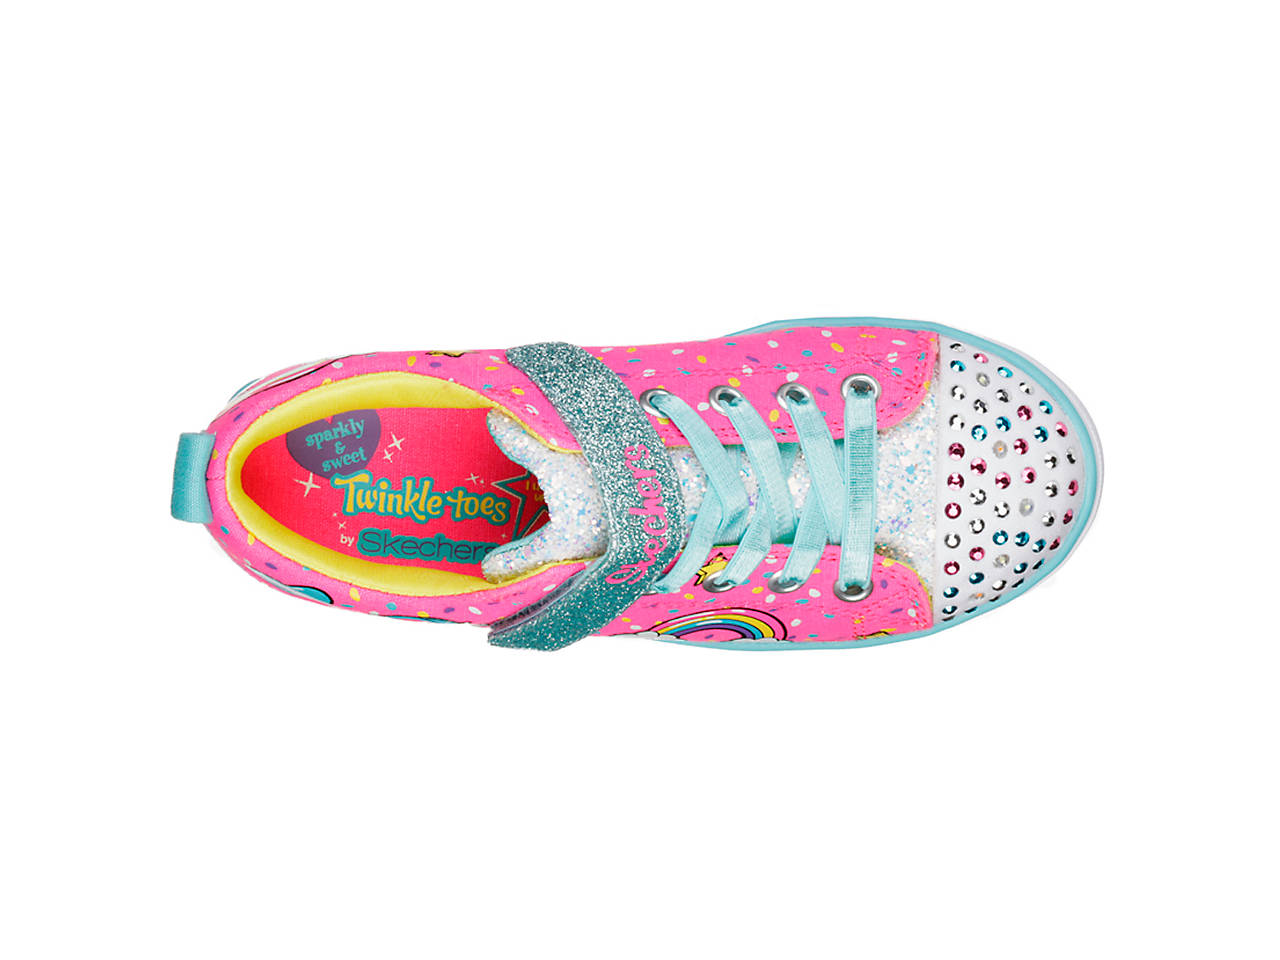 d4d2c74576ac Skechers Twinkle Toes Unicorn Craze Toddler   Youth Light-Up Sneaker ...